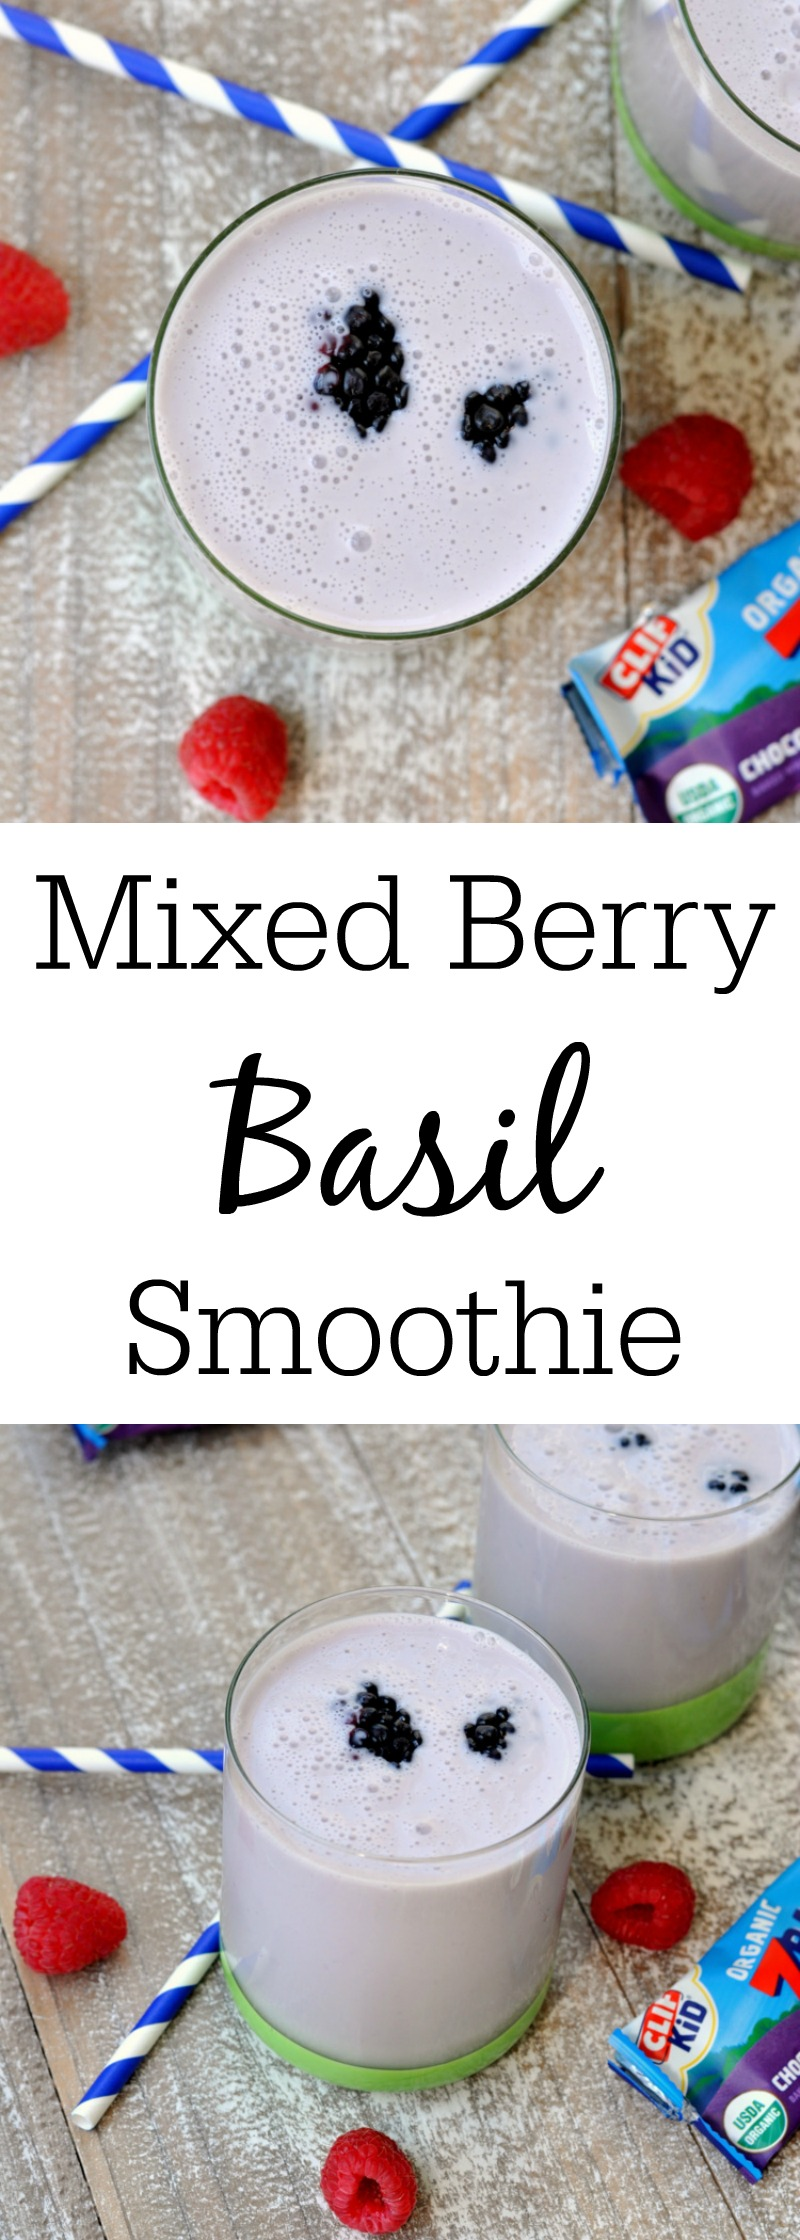 Mixed Berry, Banana, And Yogurt Smoothie Recipe — Dishmaps